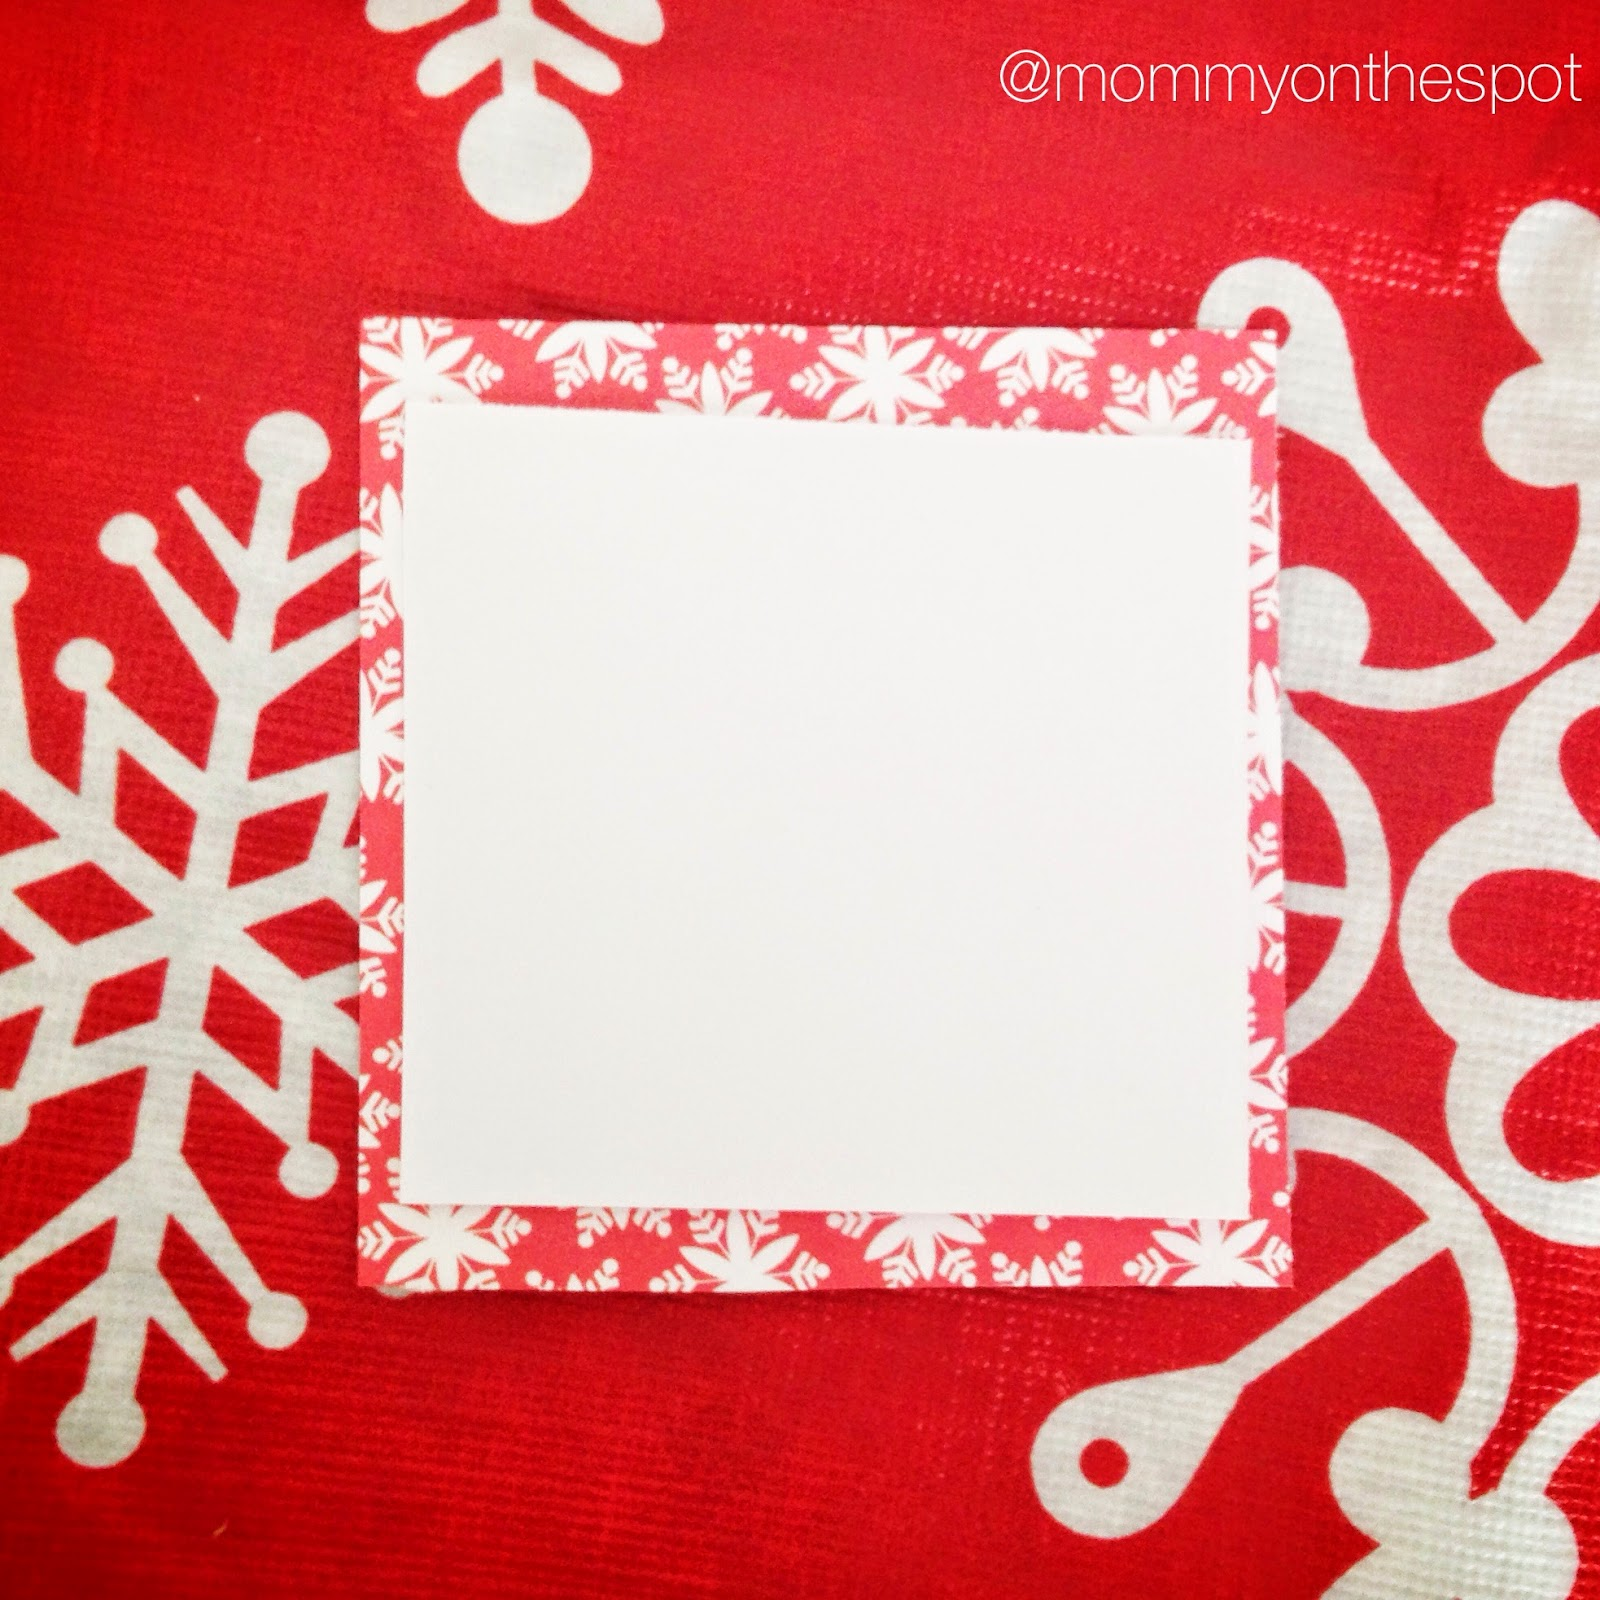 erin janda rawlings mommy on the spot diy christmas craft